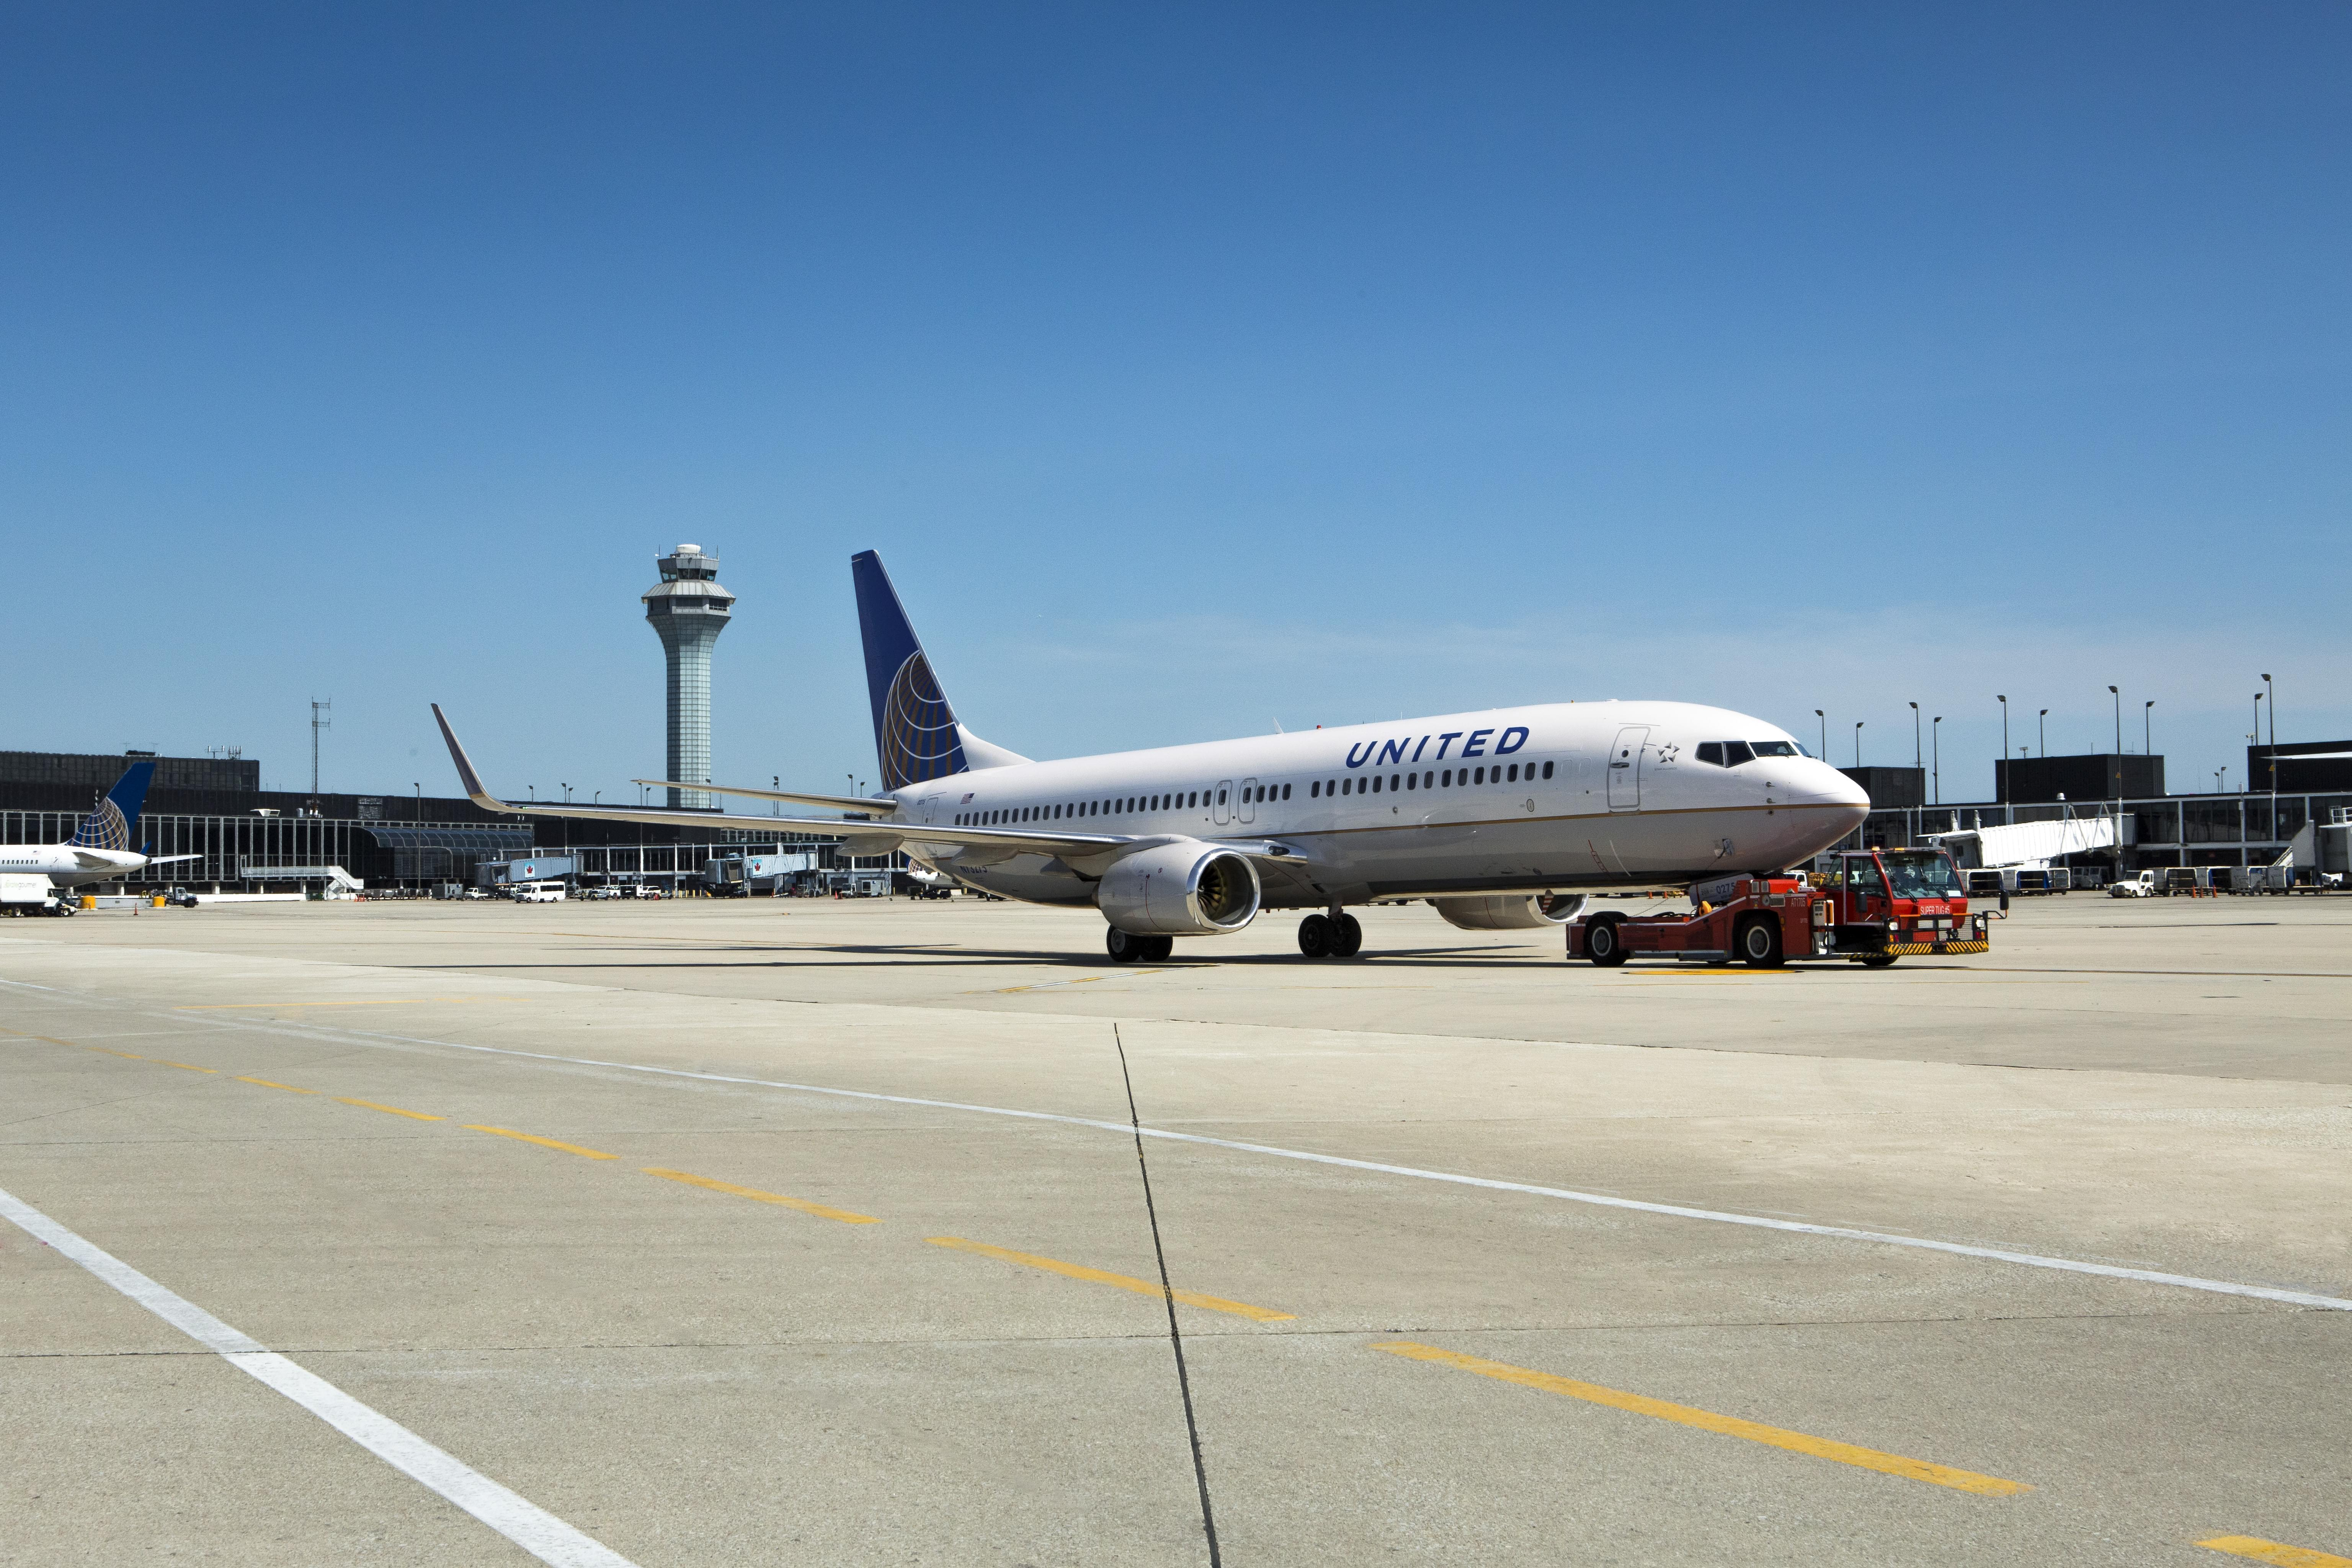 A United flight on the runway at O'Hare International Airport in Chicago.